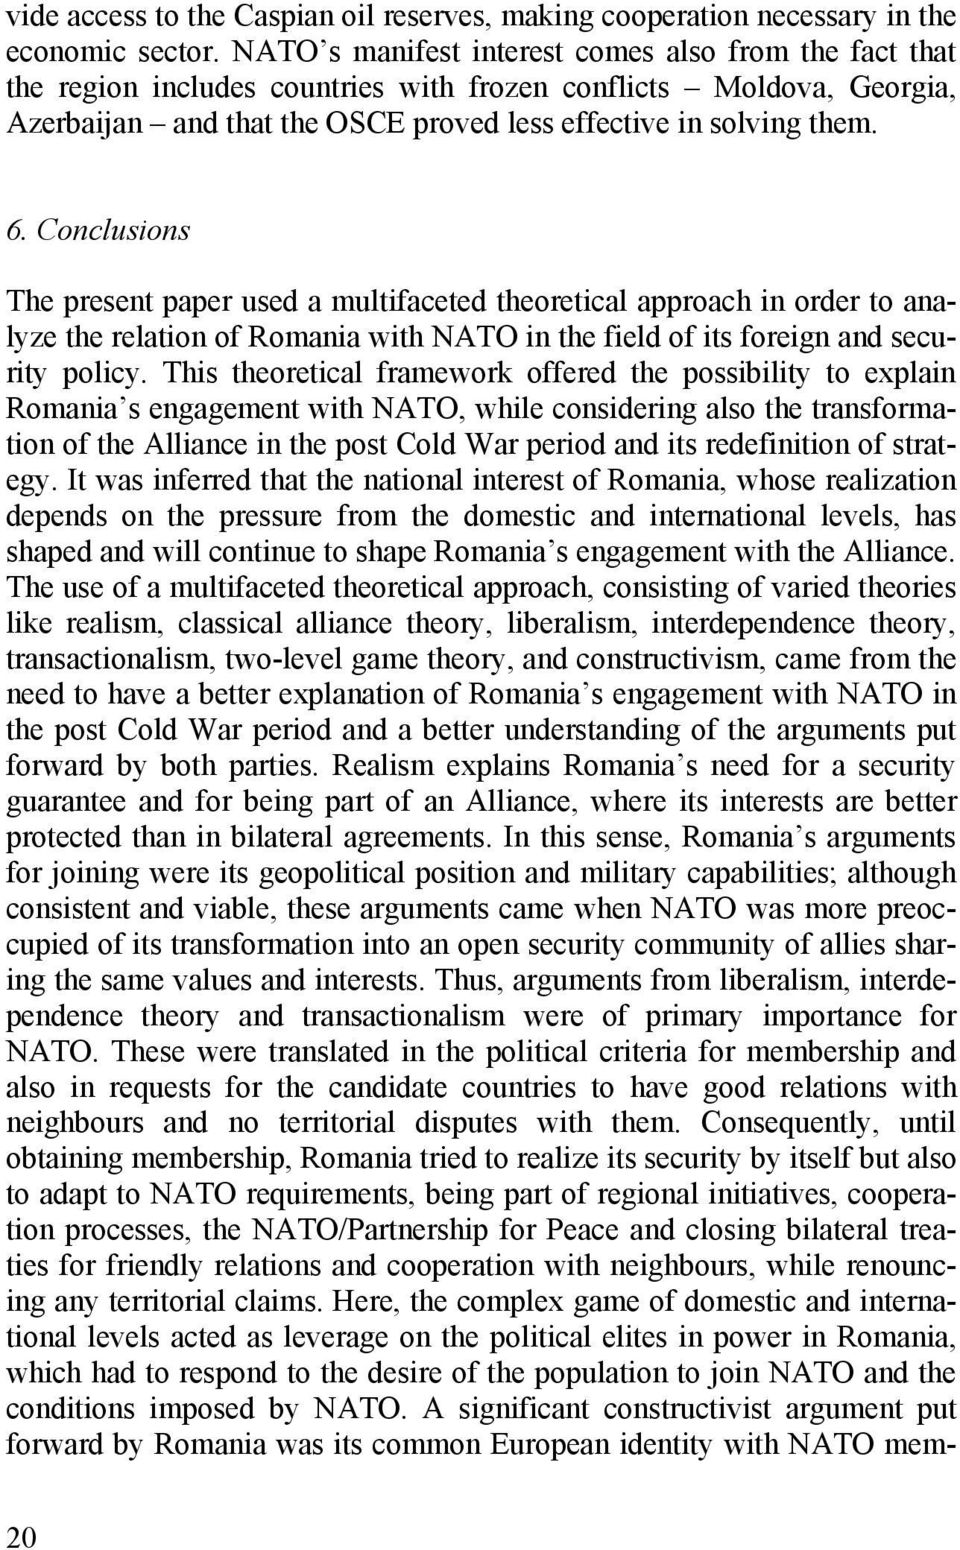 Conclusions The present paper used a multifaceted theoretical approach in order to analyze the relation of Romania with NATO in the field of its foreign and security policy.